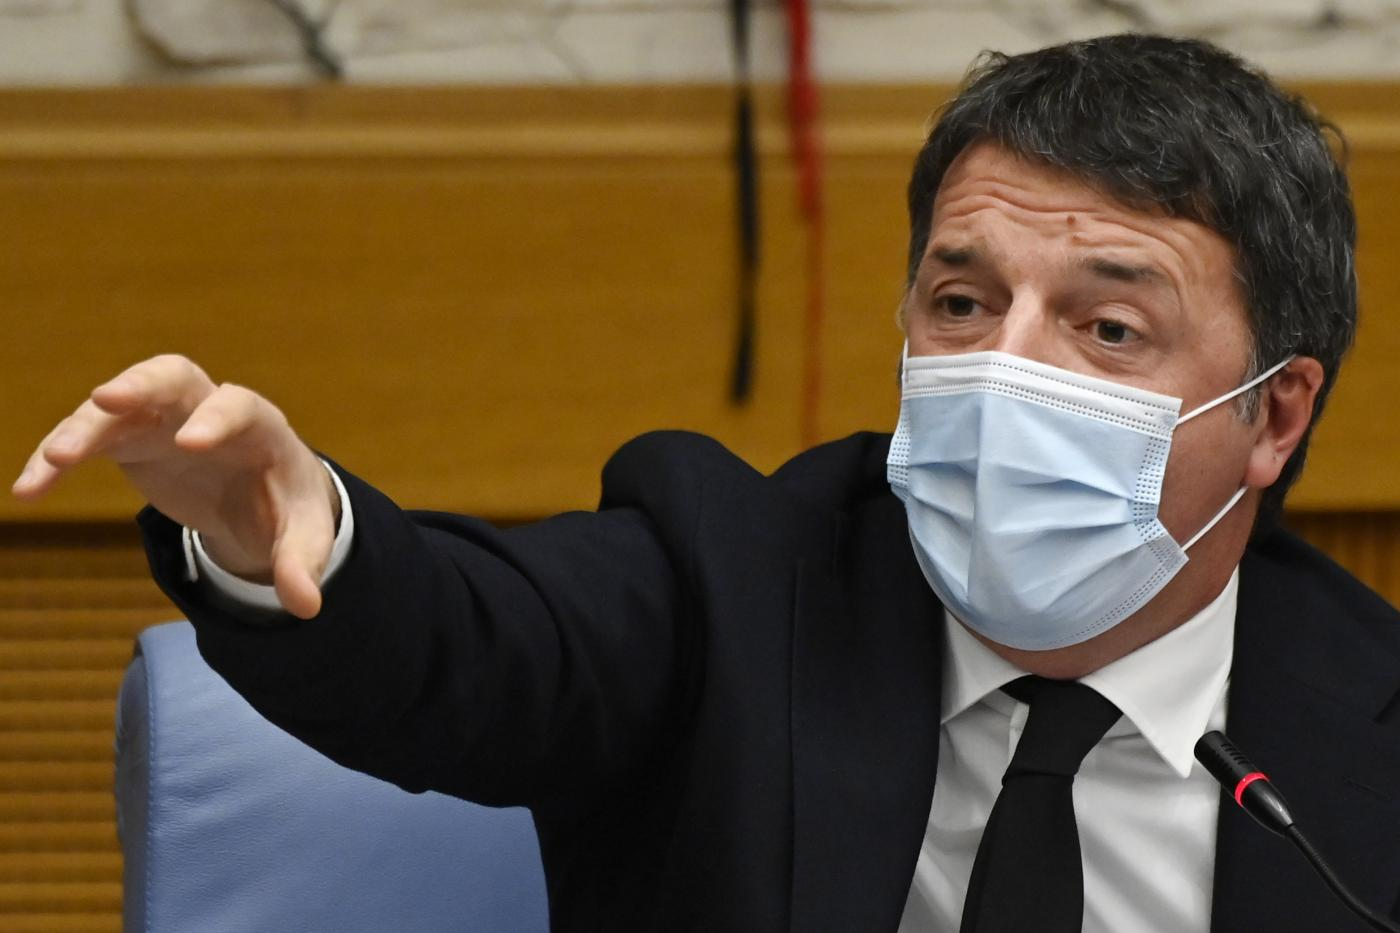 Italy Political Crisis Explainer